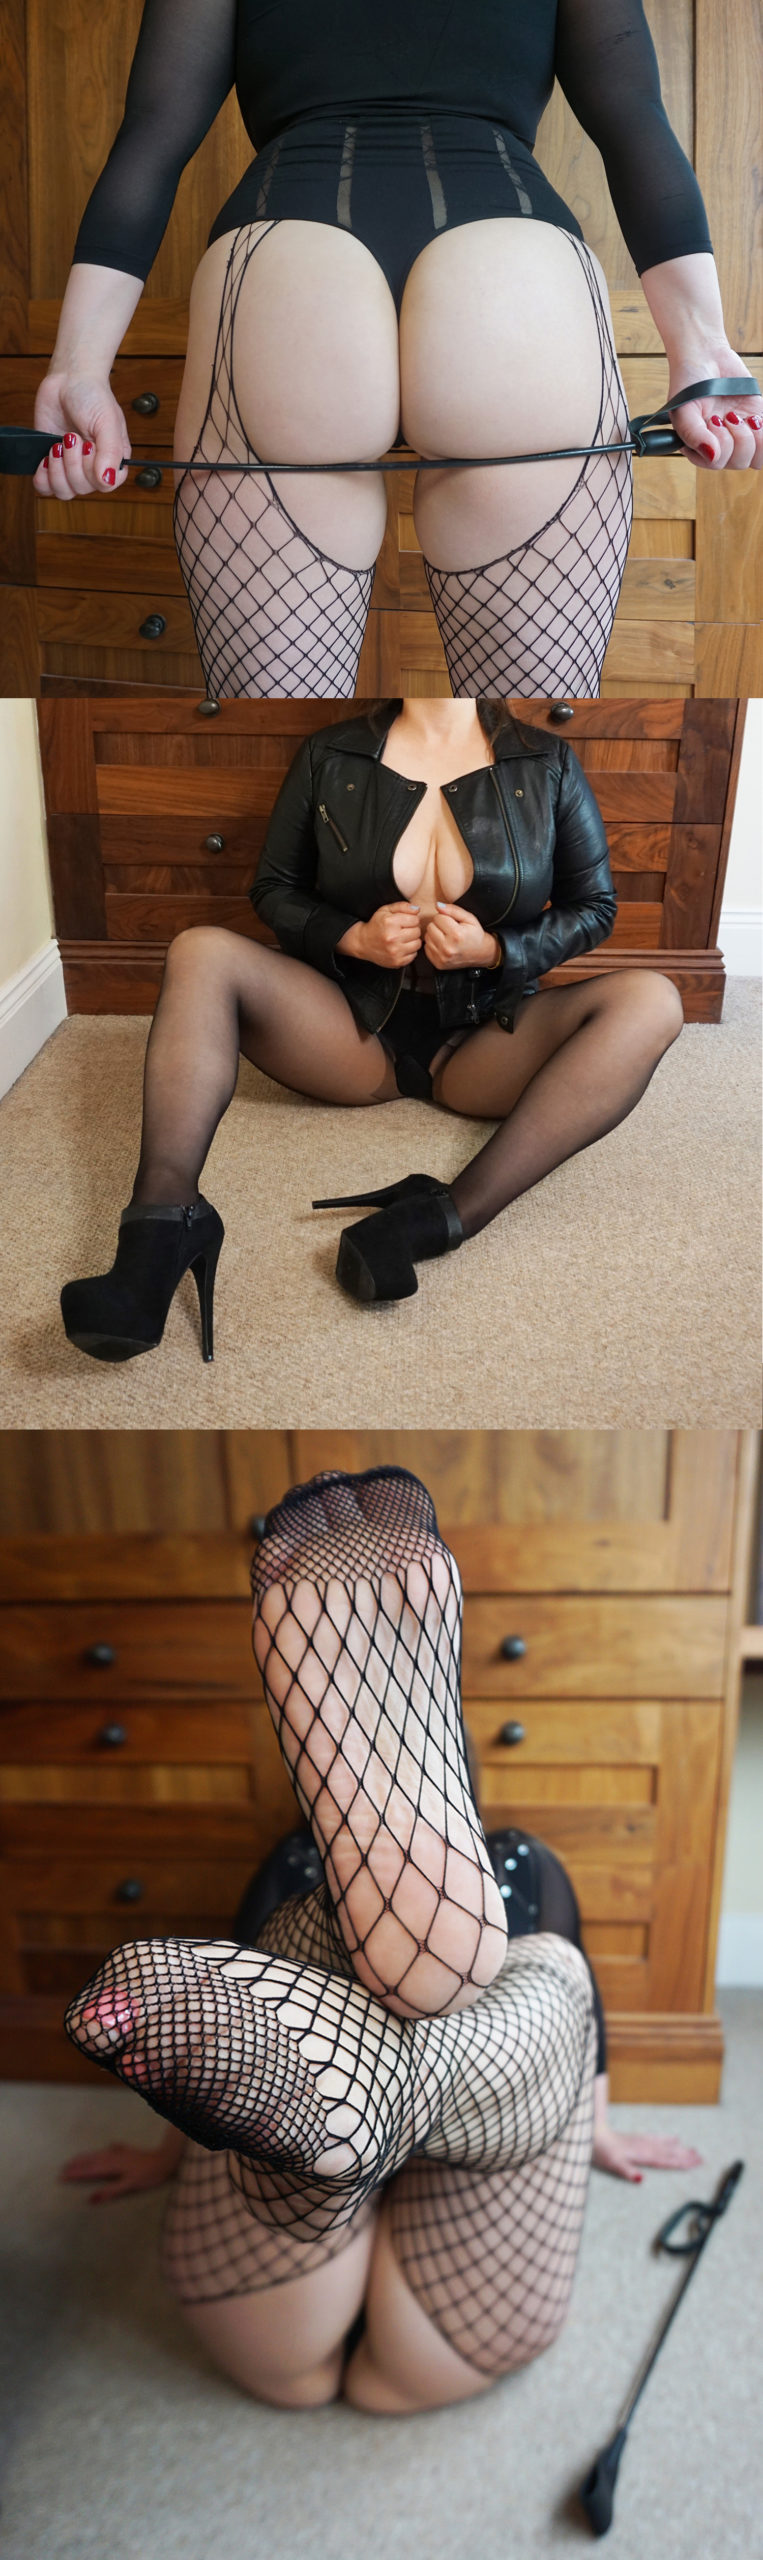 Make a fetish or BDSM date with London Mistress, Amanda Jones